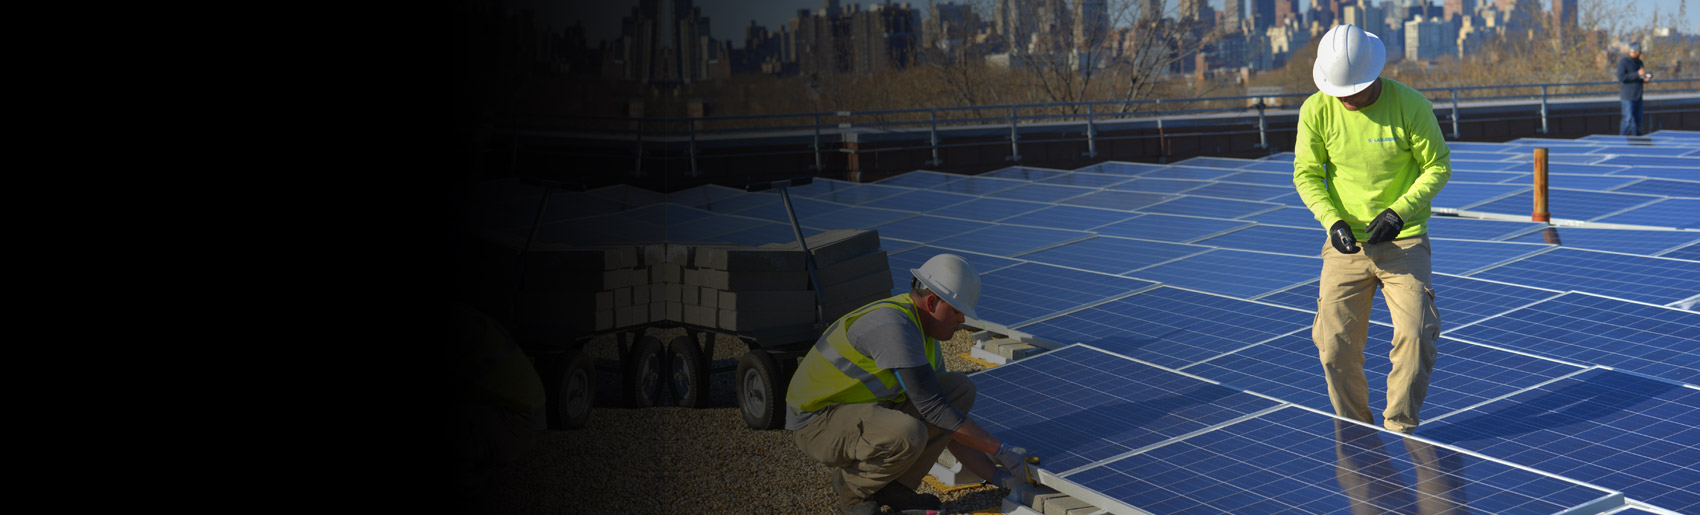 Solar panels are being installed on a rooftop in New York City